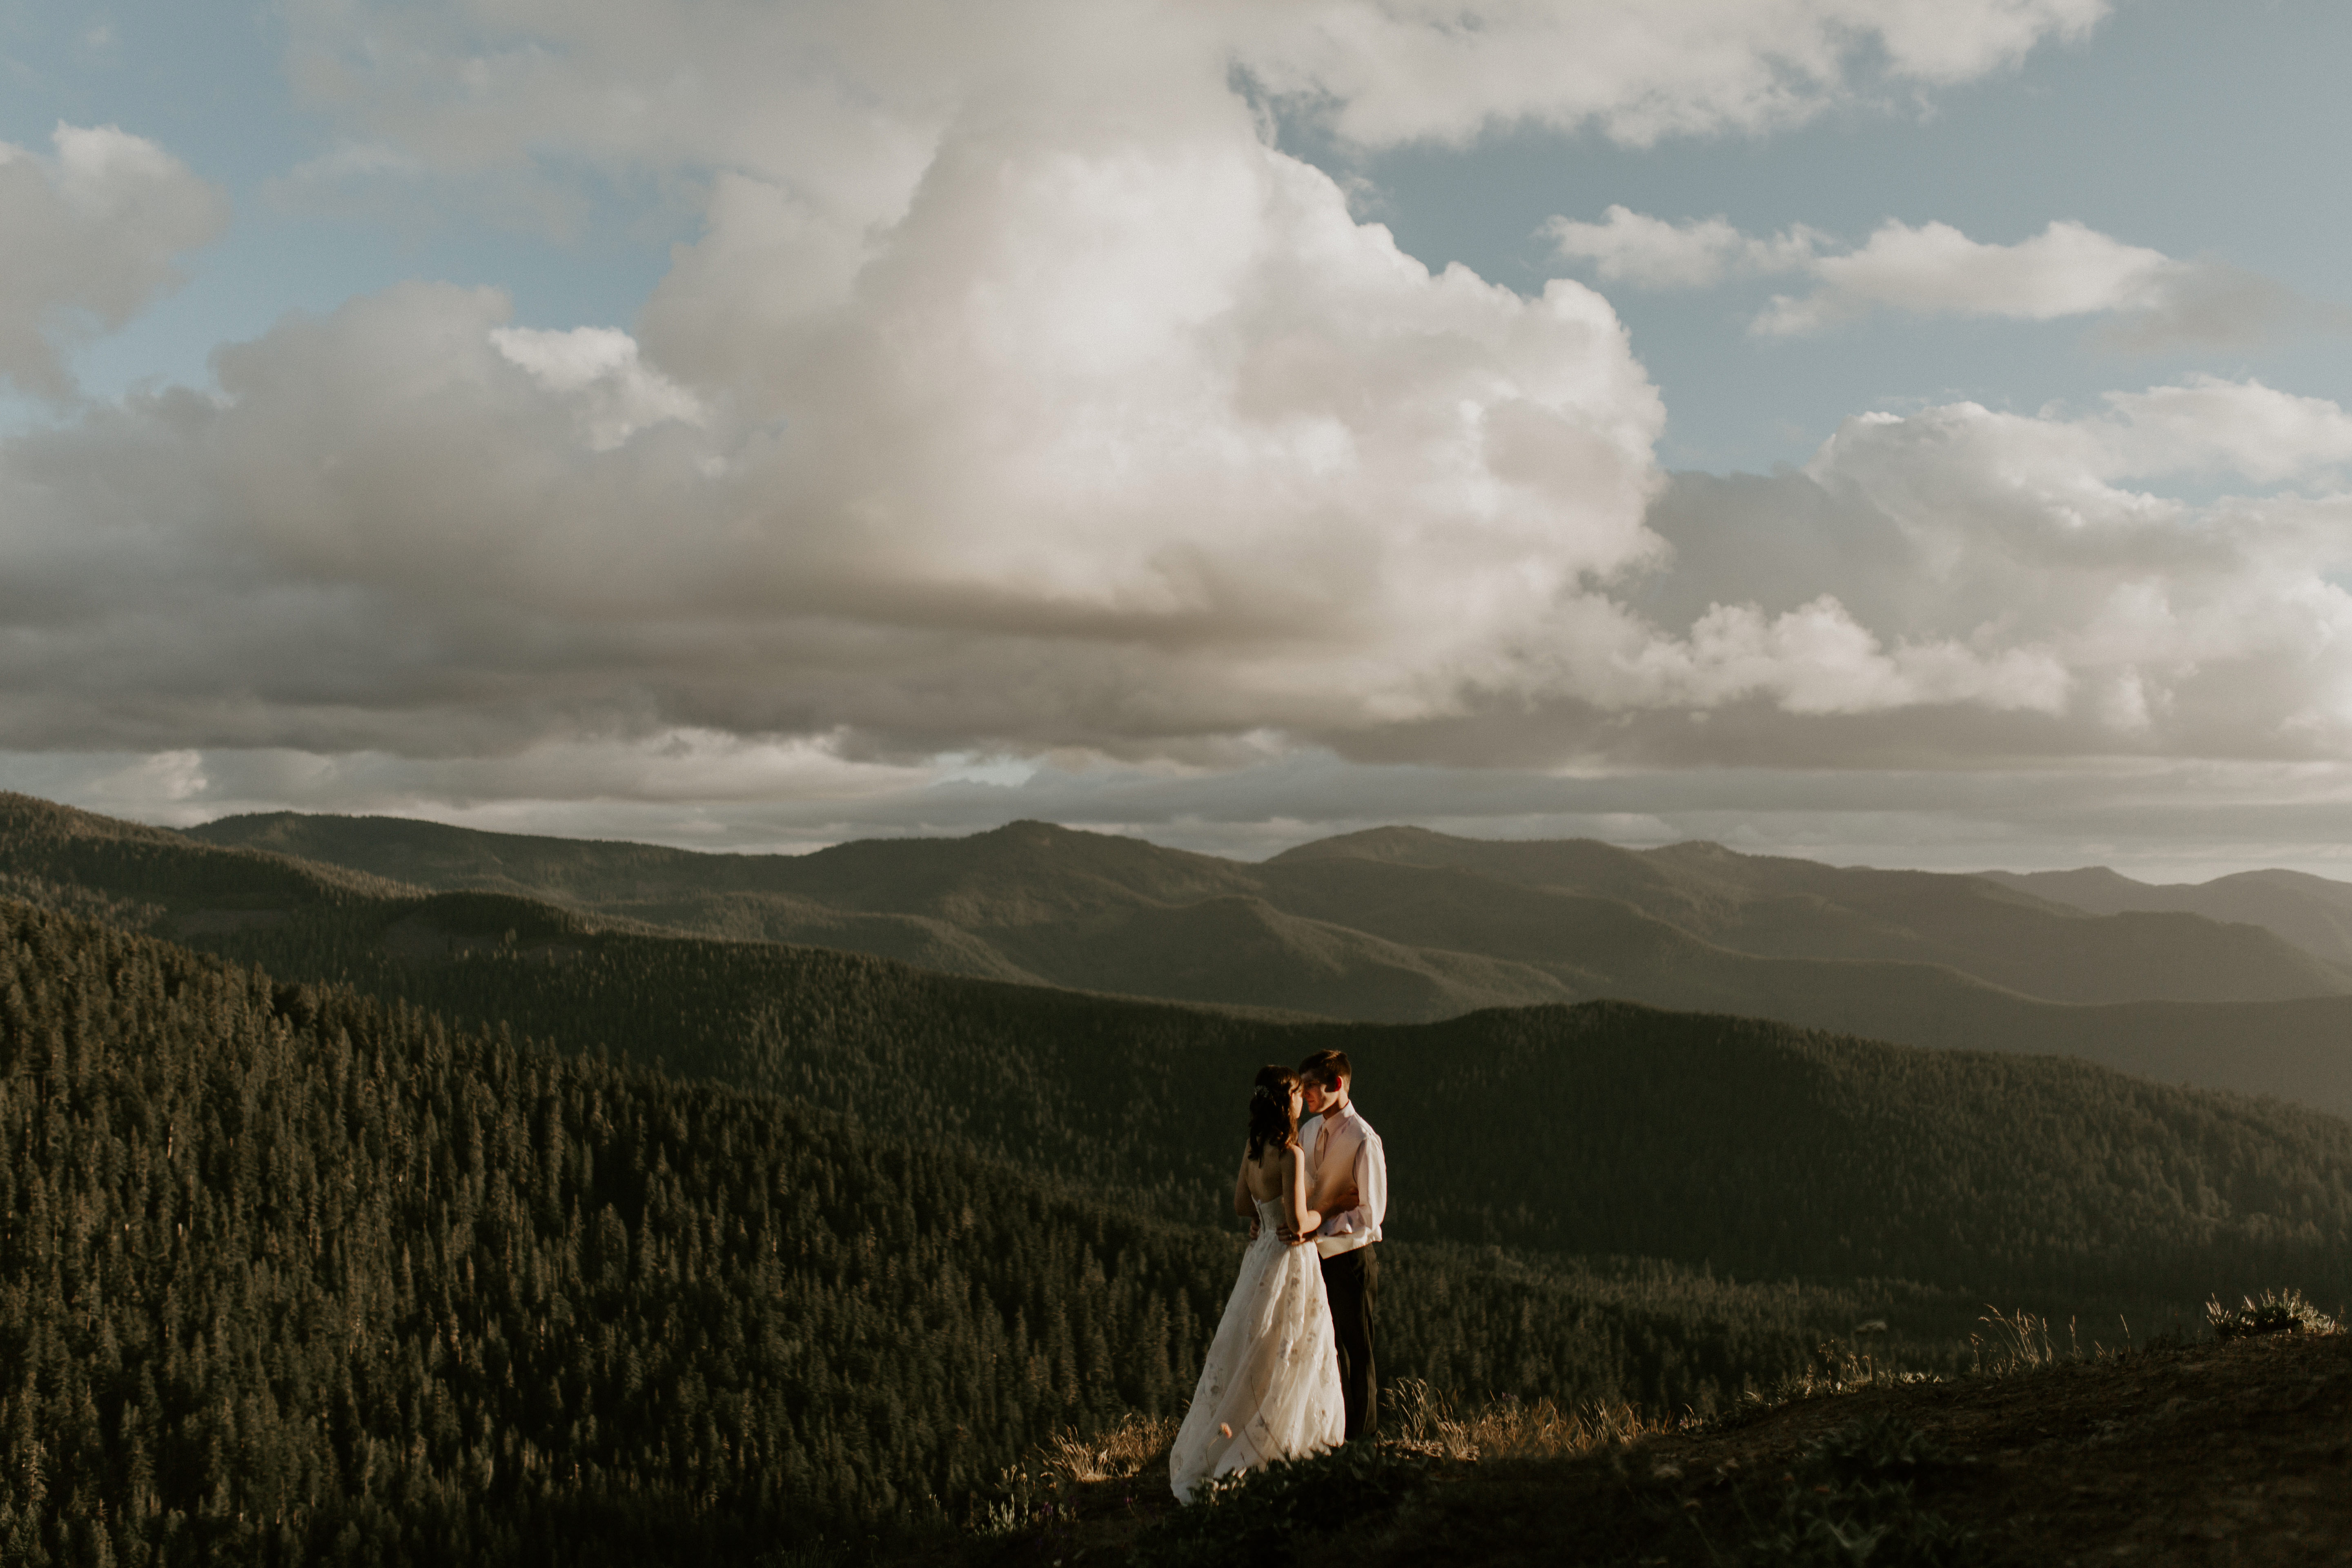 Mount Hood Elopement Photography in Oregon.